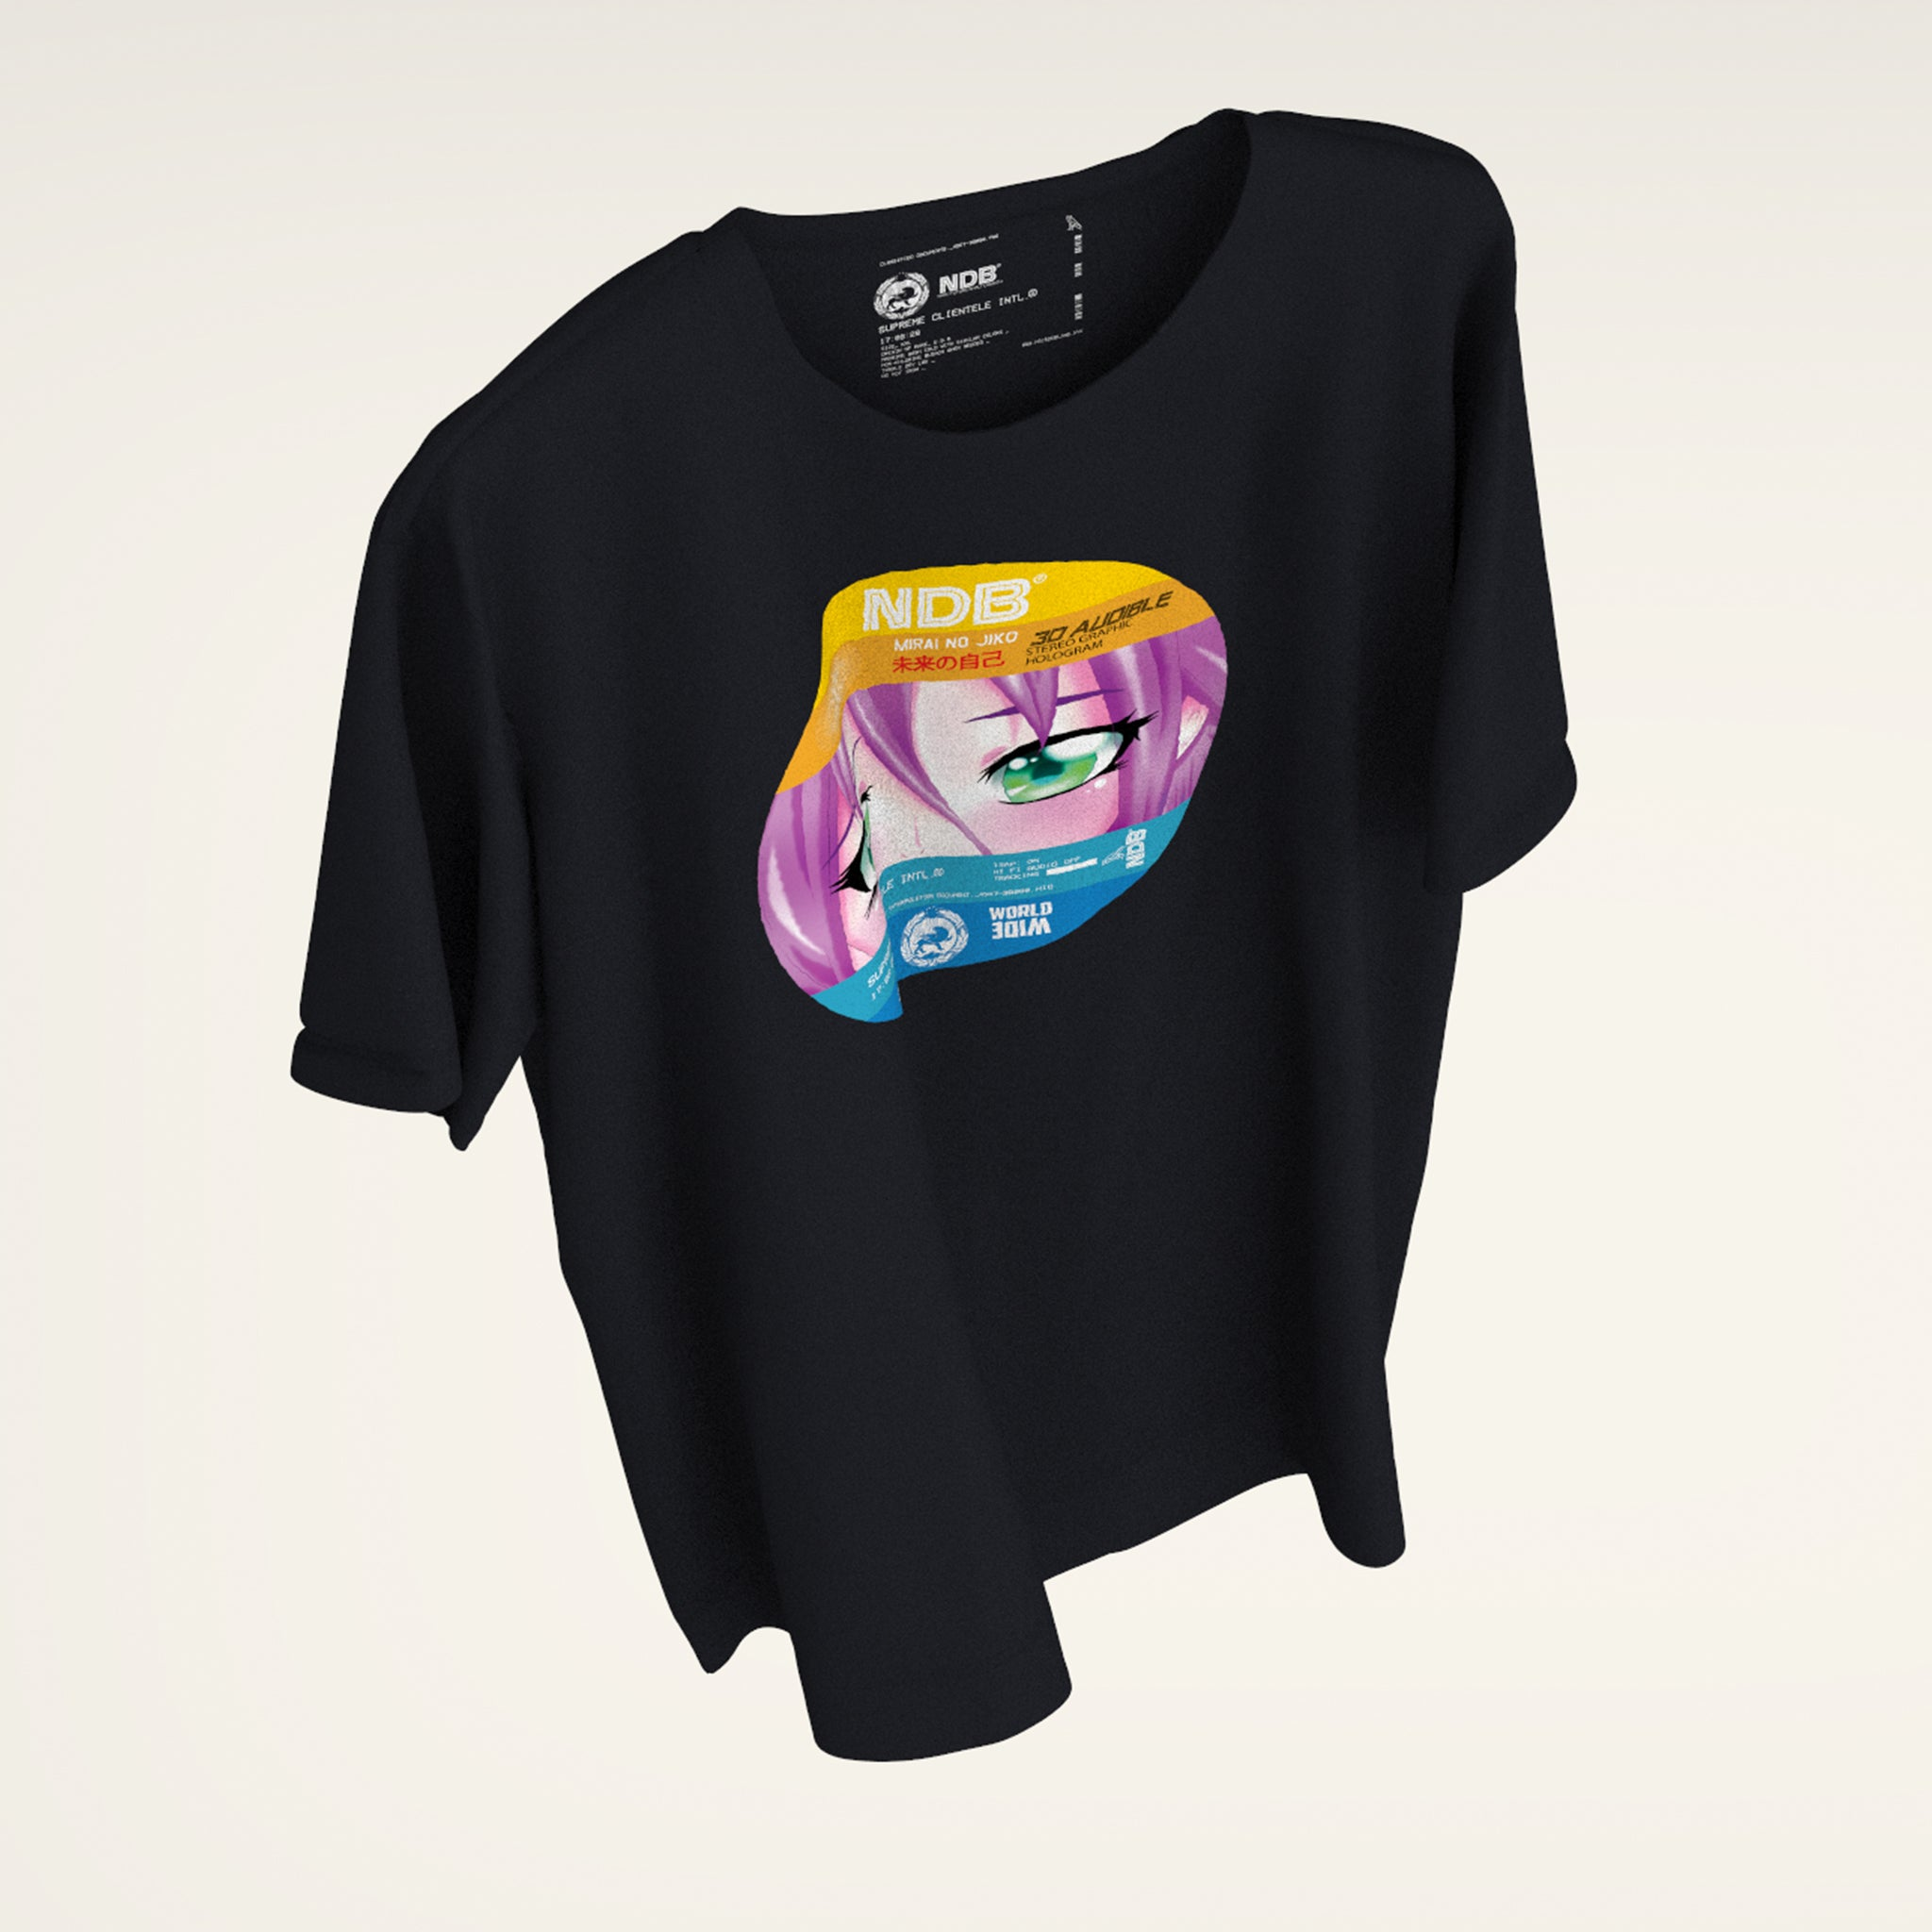 AniMax Holographic media T-shirt